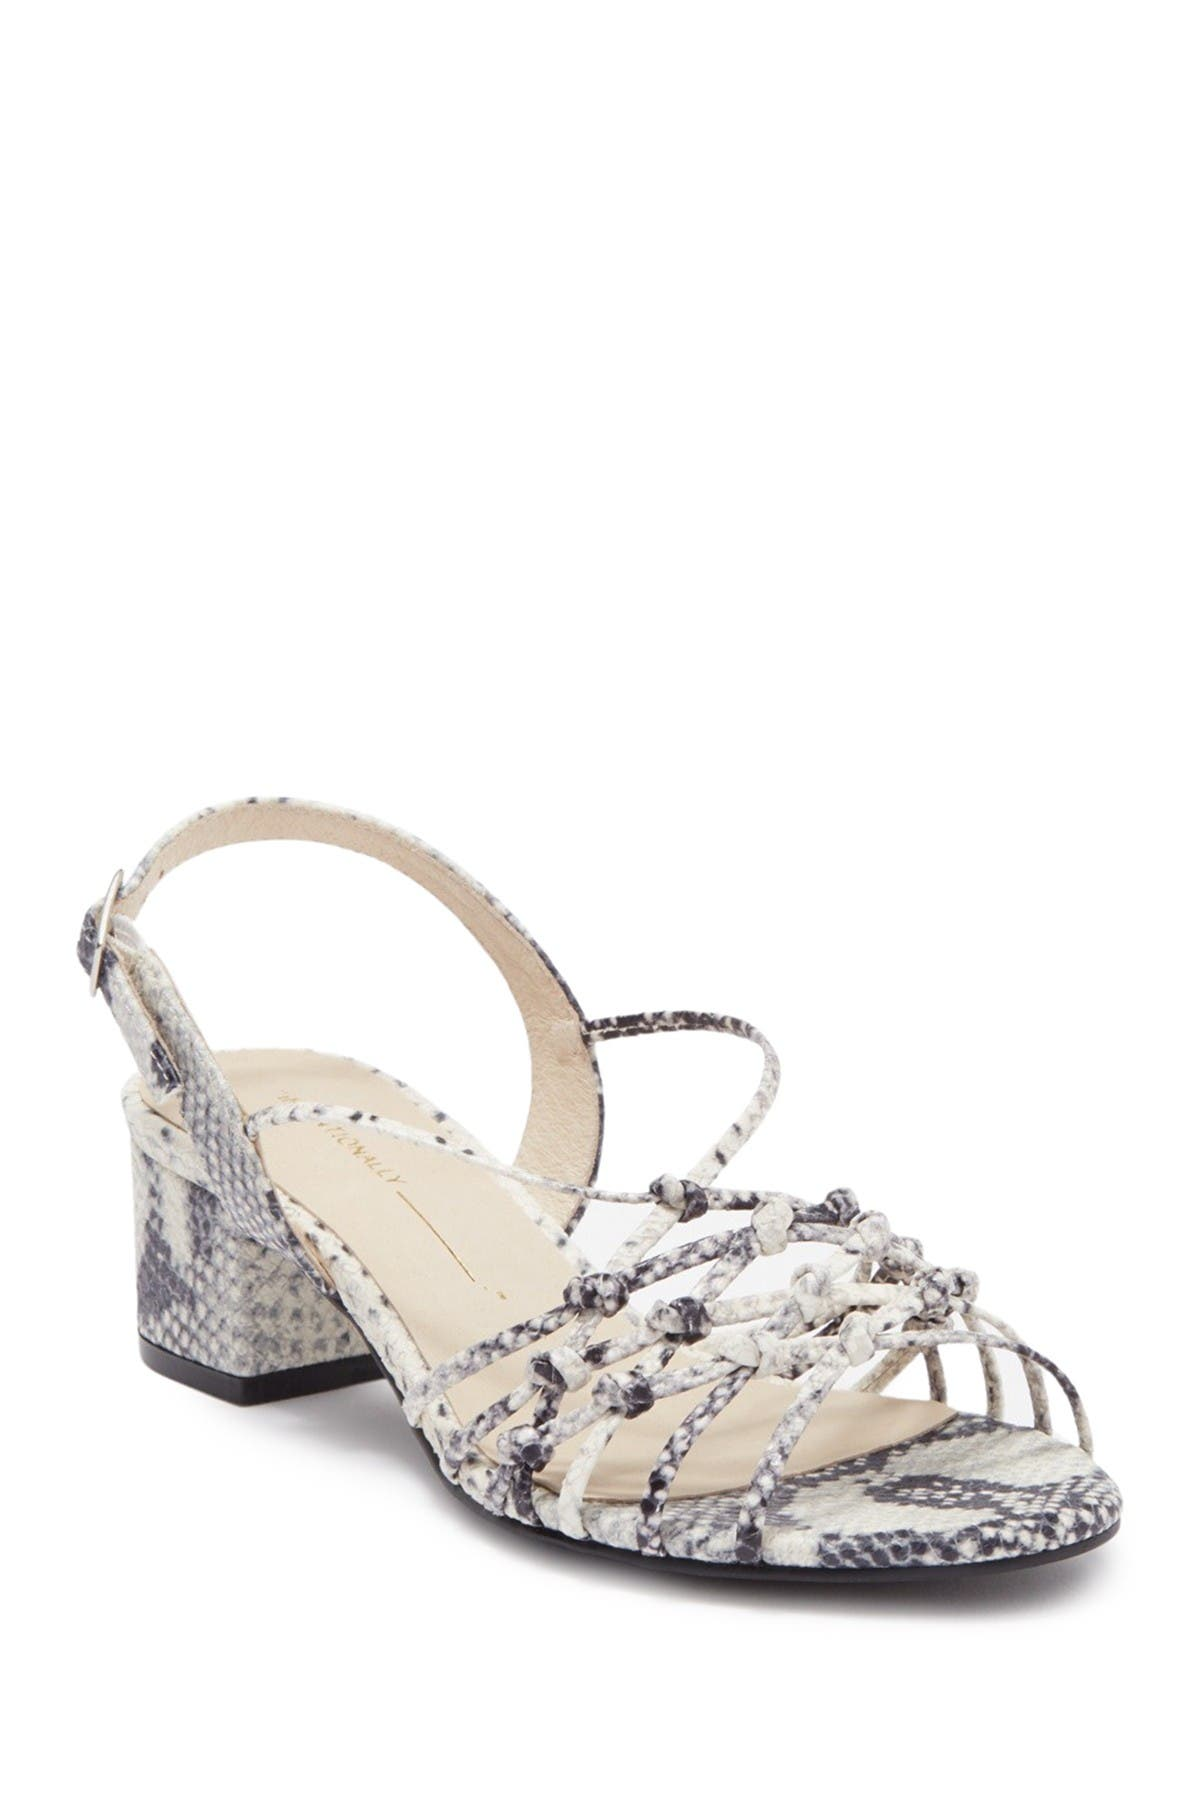 Image of Intentionally Blank Cream Grey Python Intertwined Sandal